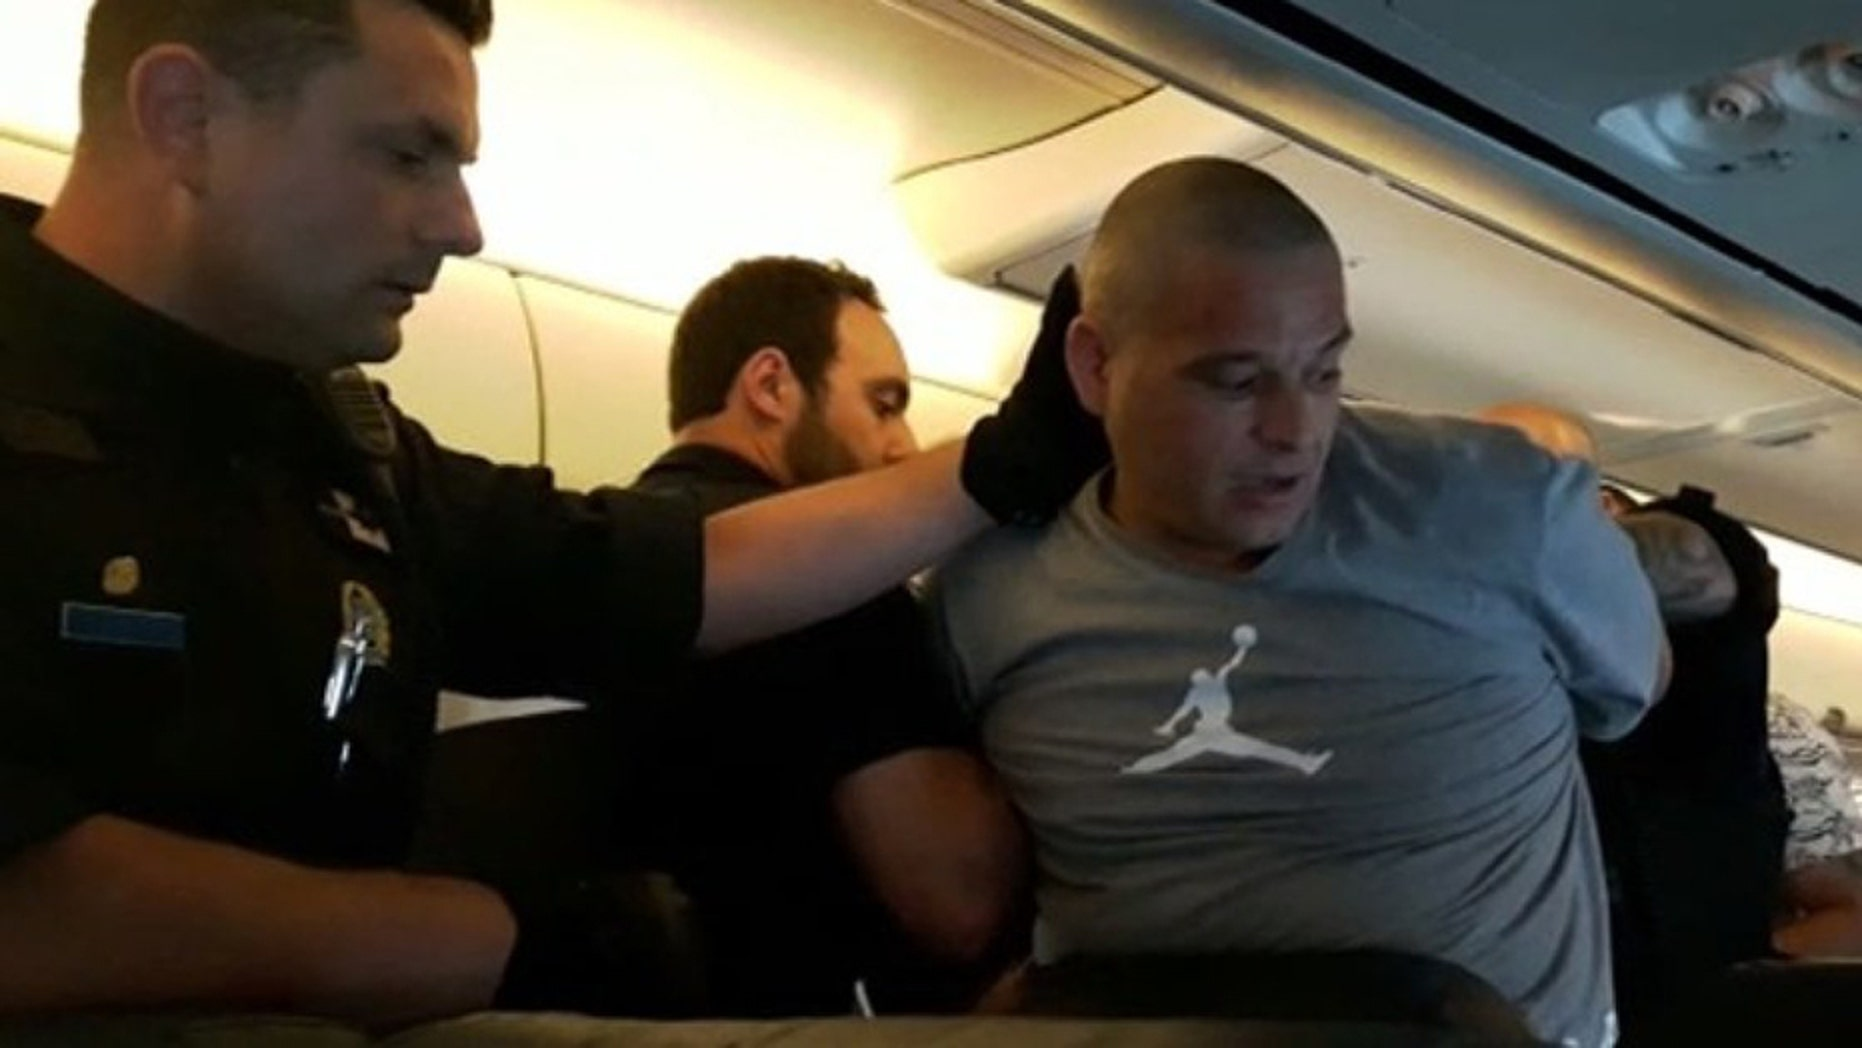 Charalabos Nassios pleaded guilty to charges of assault, mischief and uttering threats during a Cuba-bound Sunwing flight in July last year.